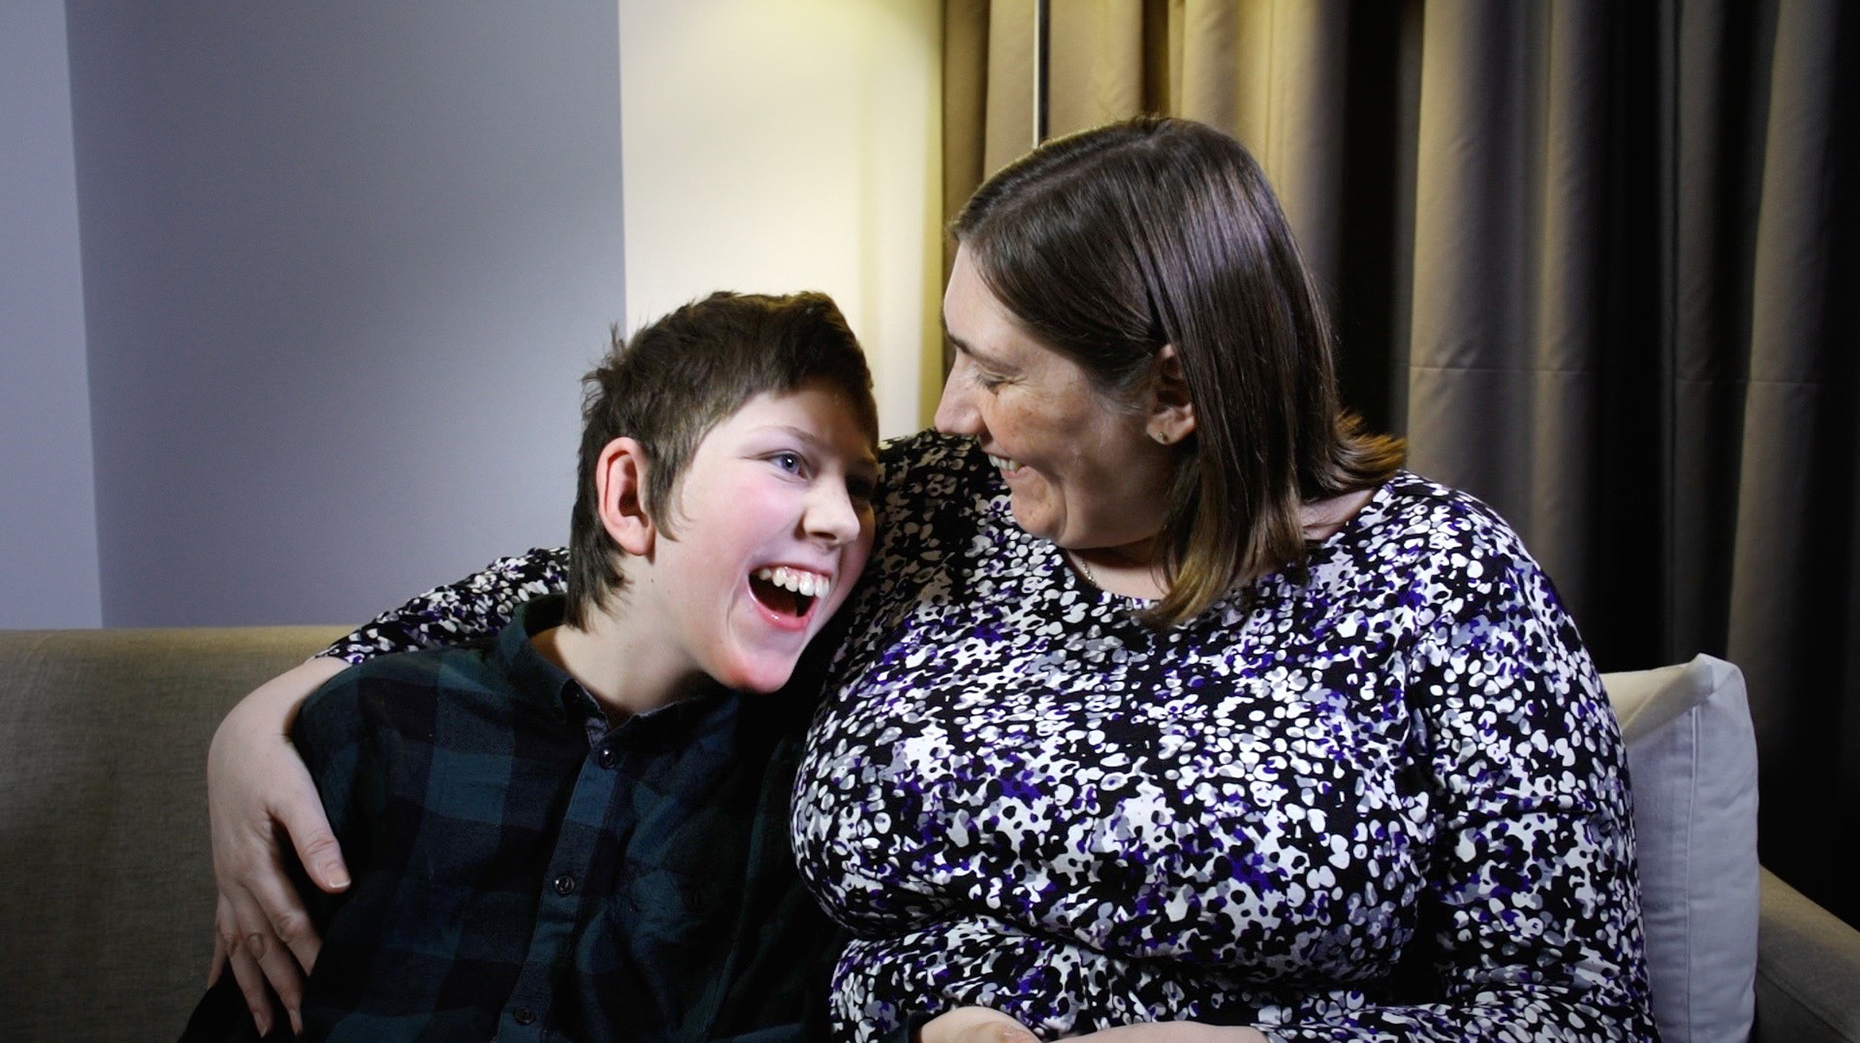 Suzanne Adams with her son James. Photo: Access Legal